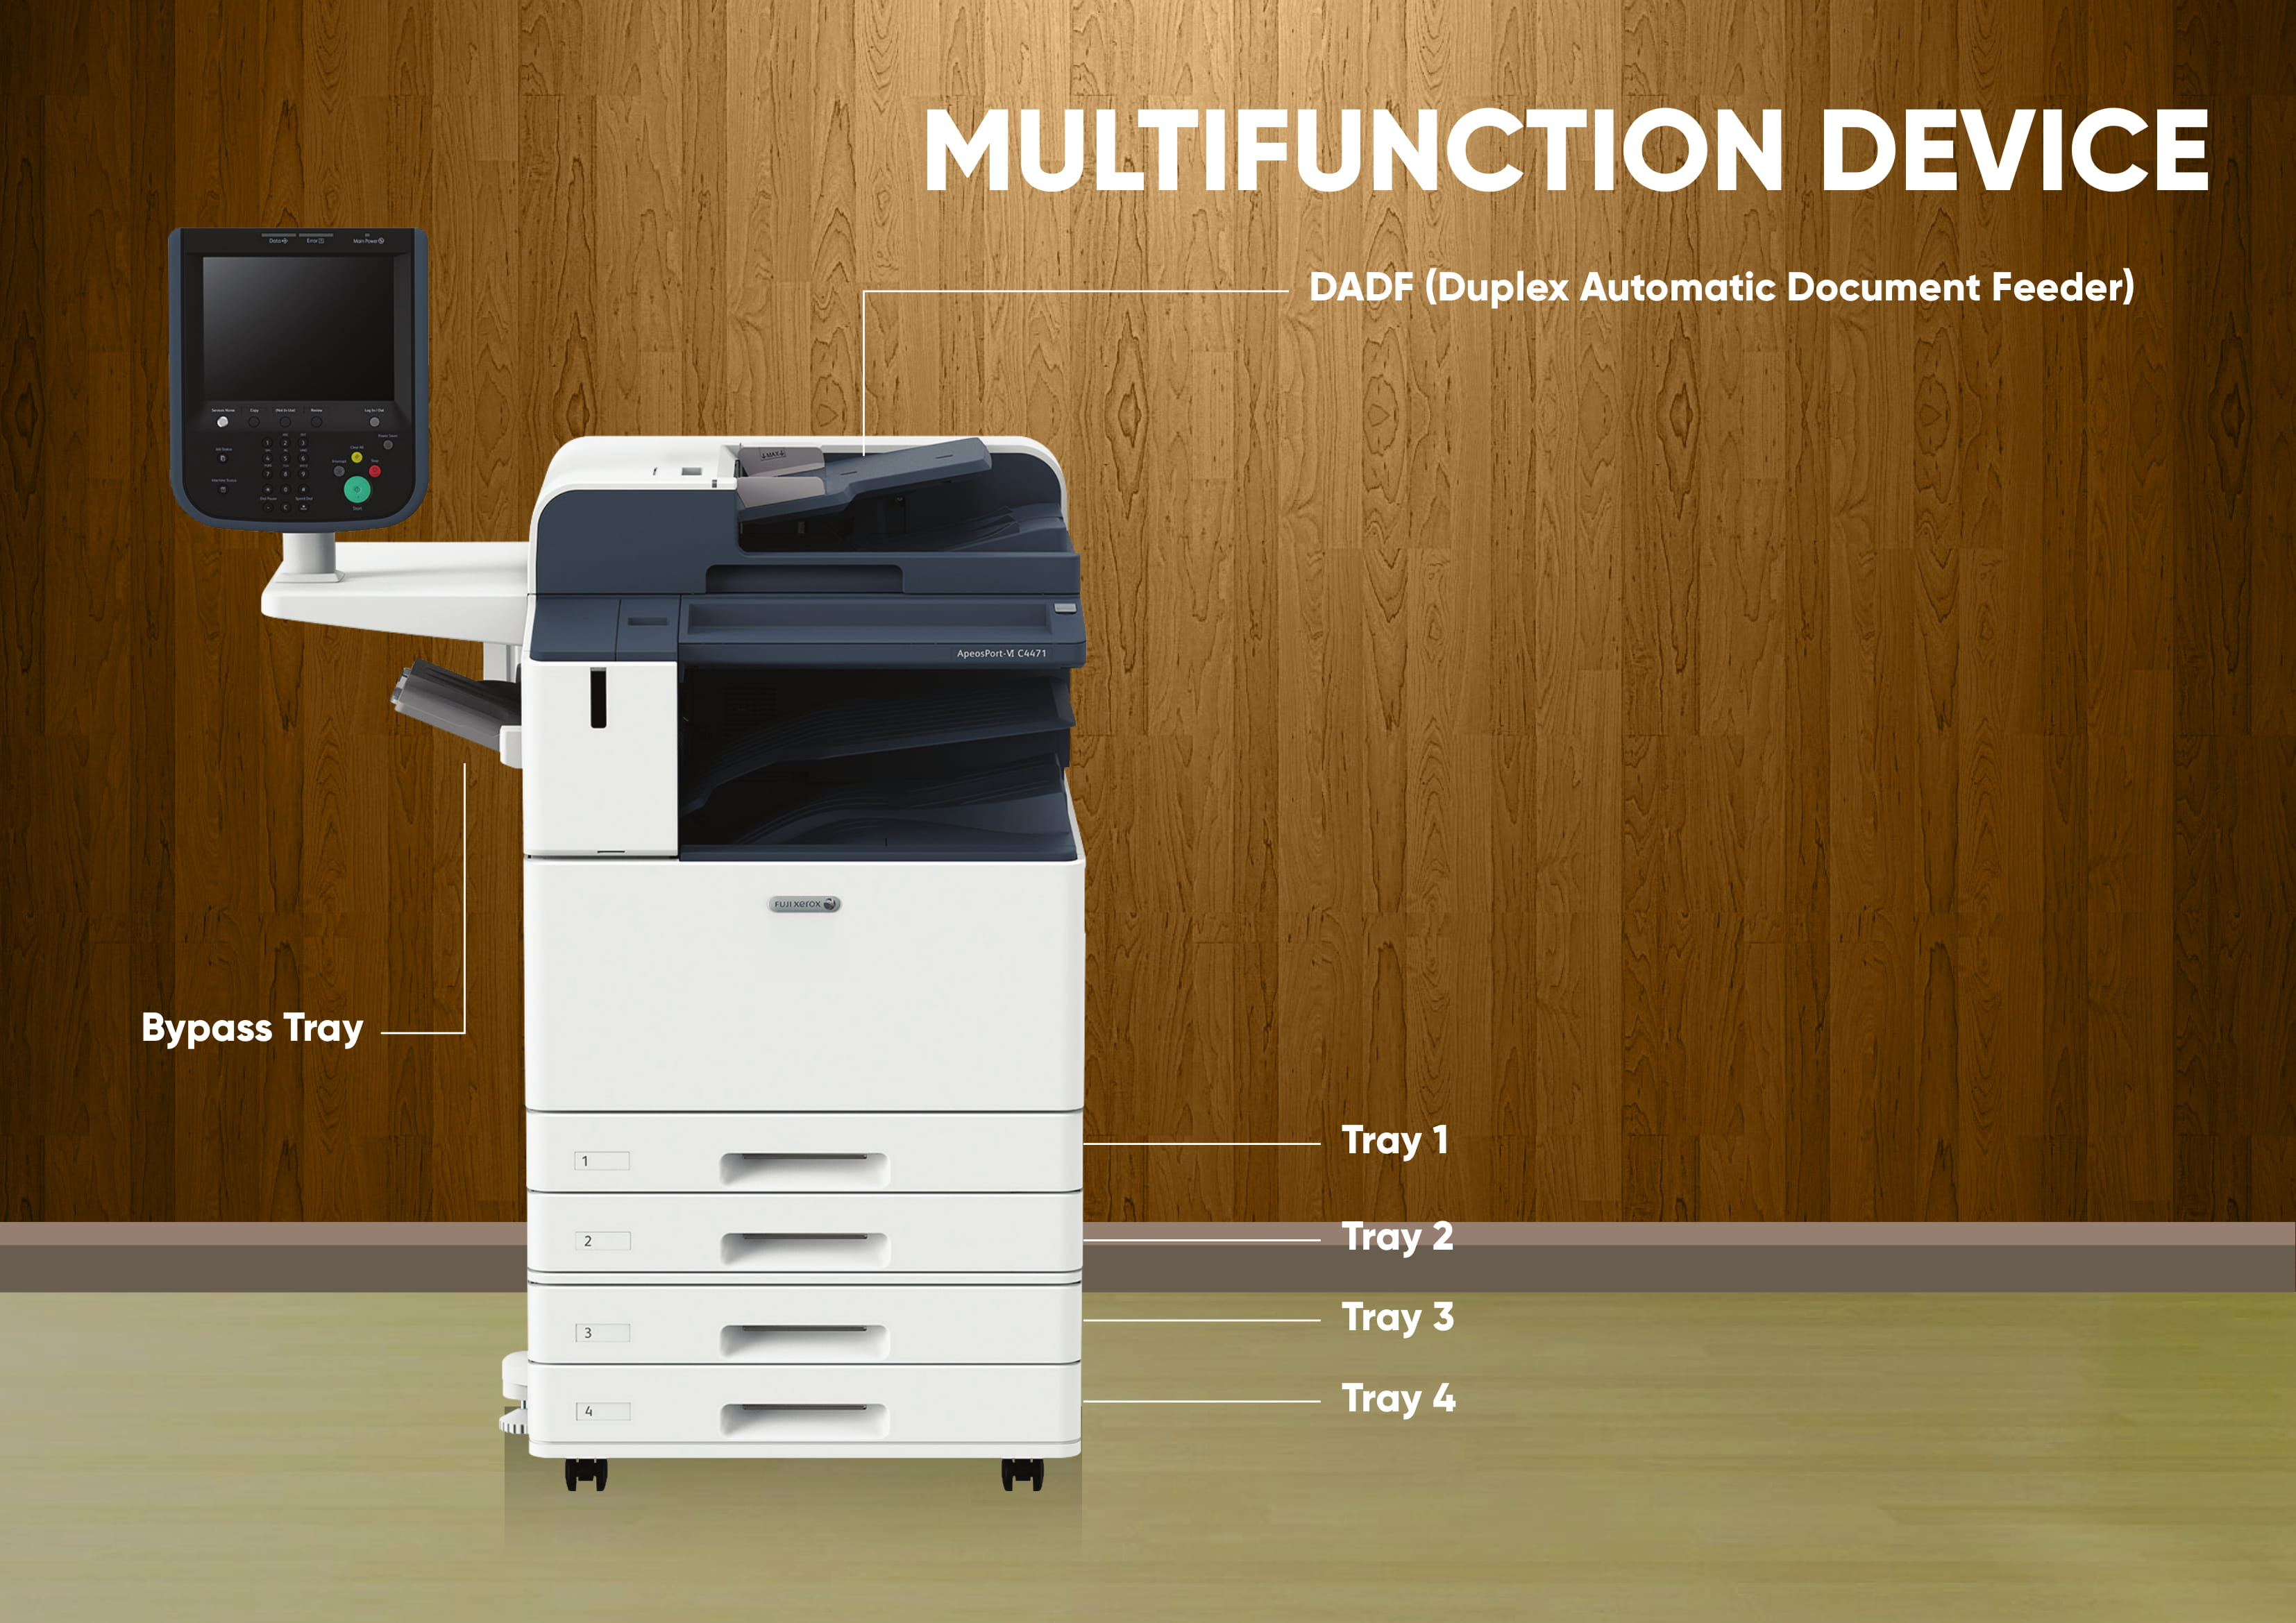 Indonesian Fuji Xerox Distributor The Place To Sell All Types Of